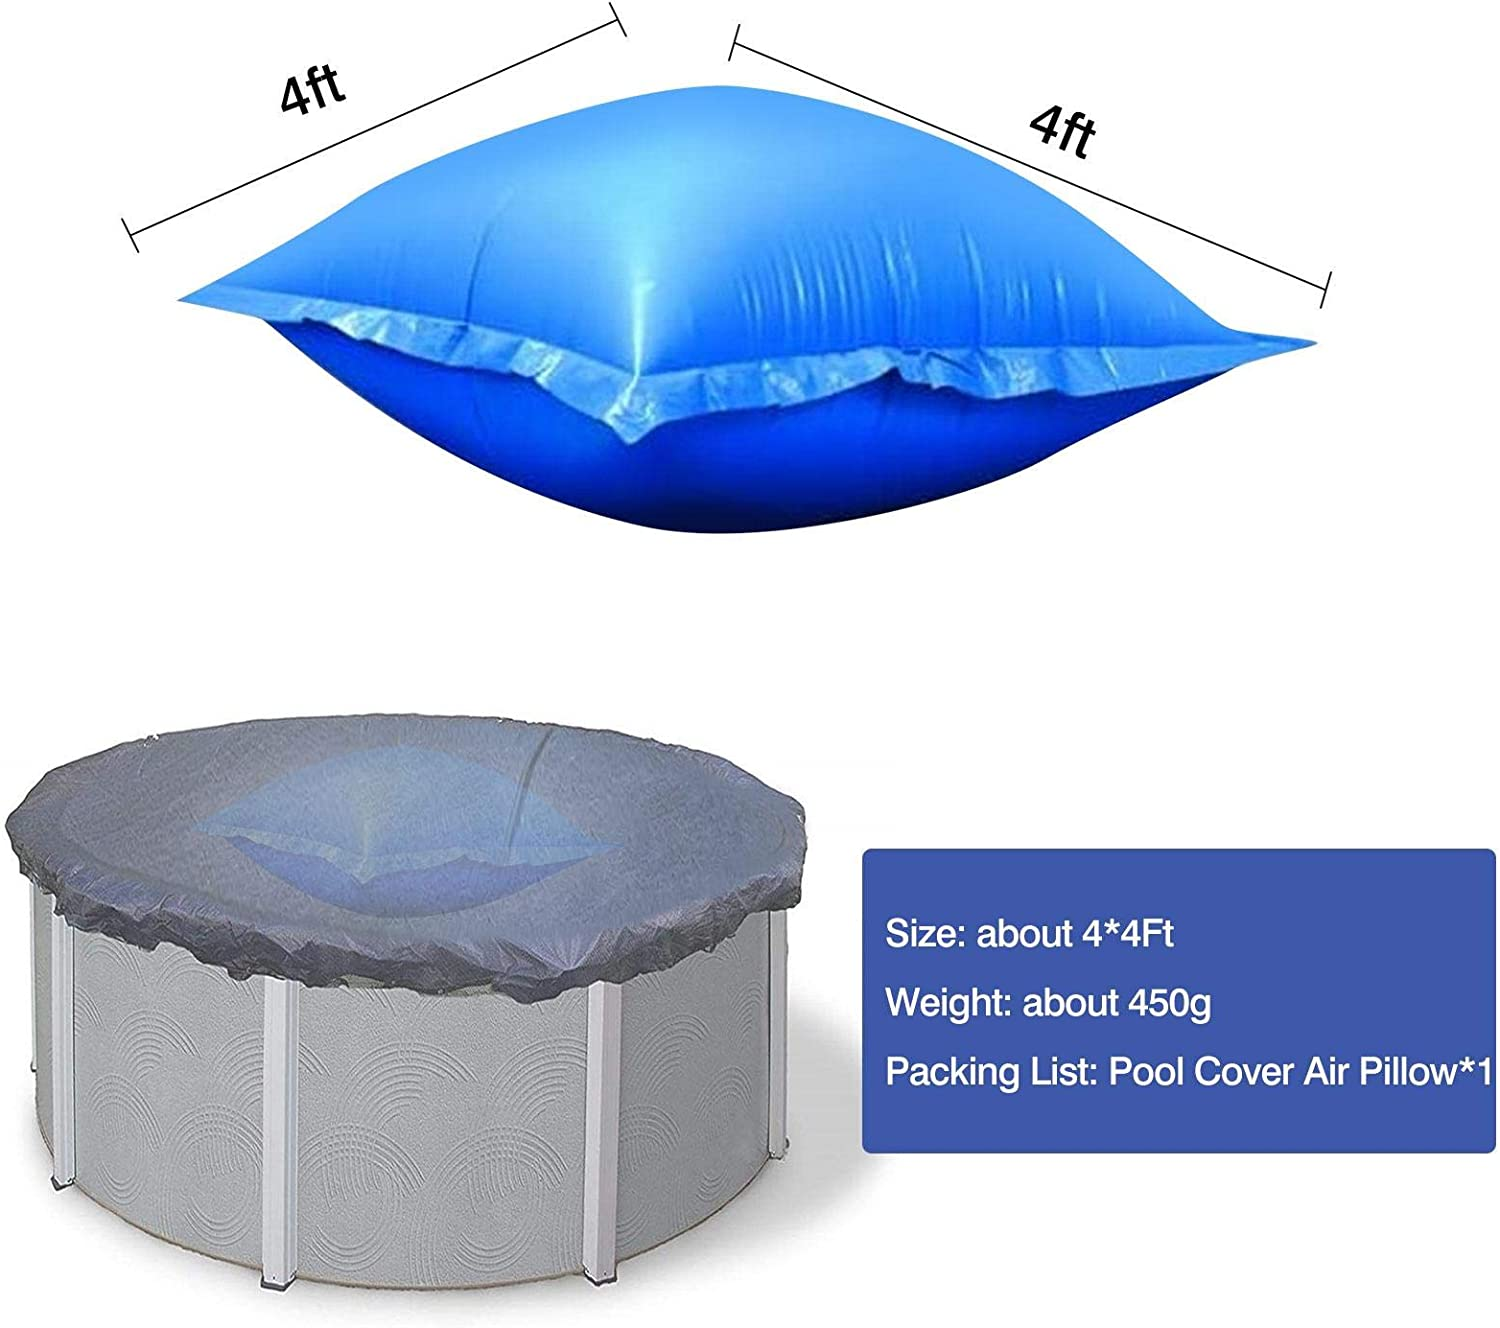 1 Pack Juhuitong Air Pillows 4x4ft Pool Pillows for Above Ground Pools Portable Inflatable Multifunction Durable Floating PVC Winter Spa Square Prevent Fading Hot Swimming Pools Blue